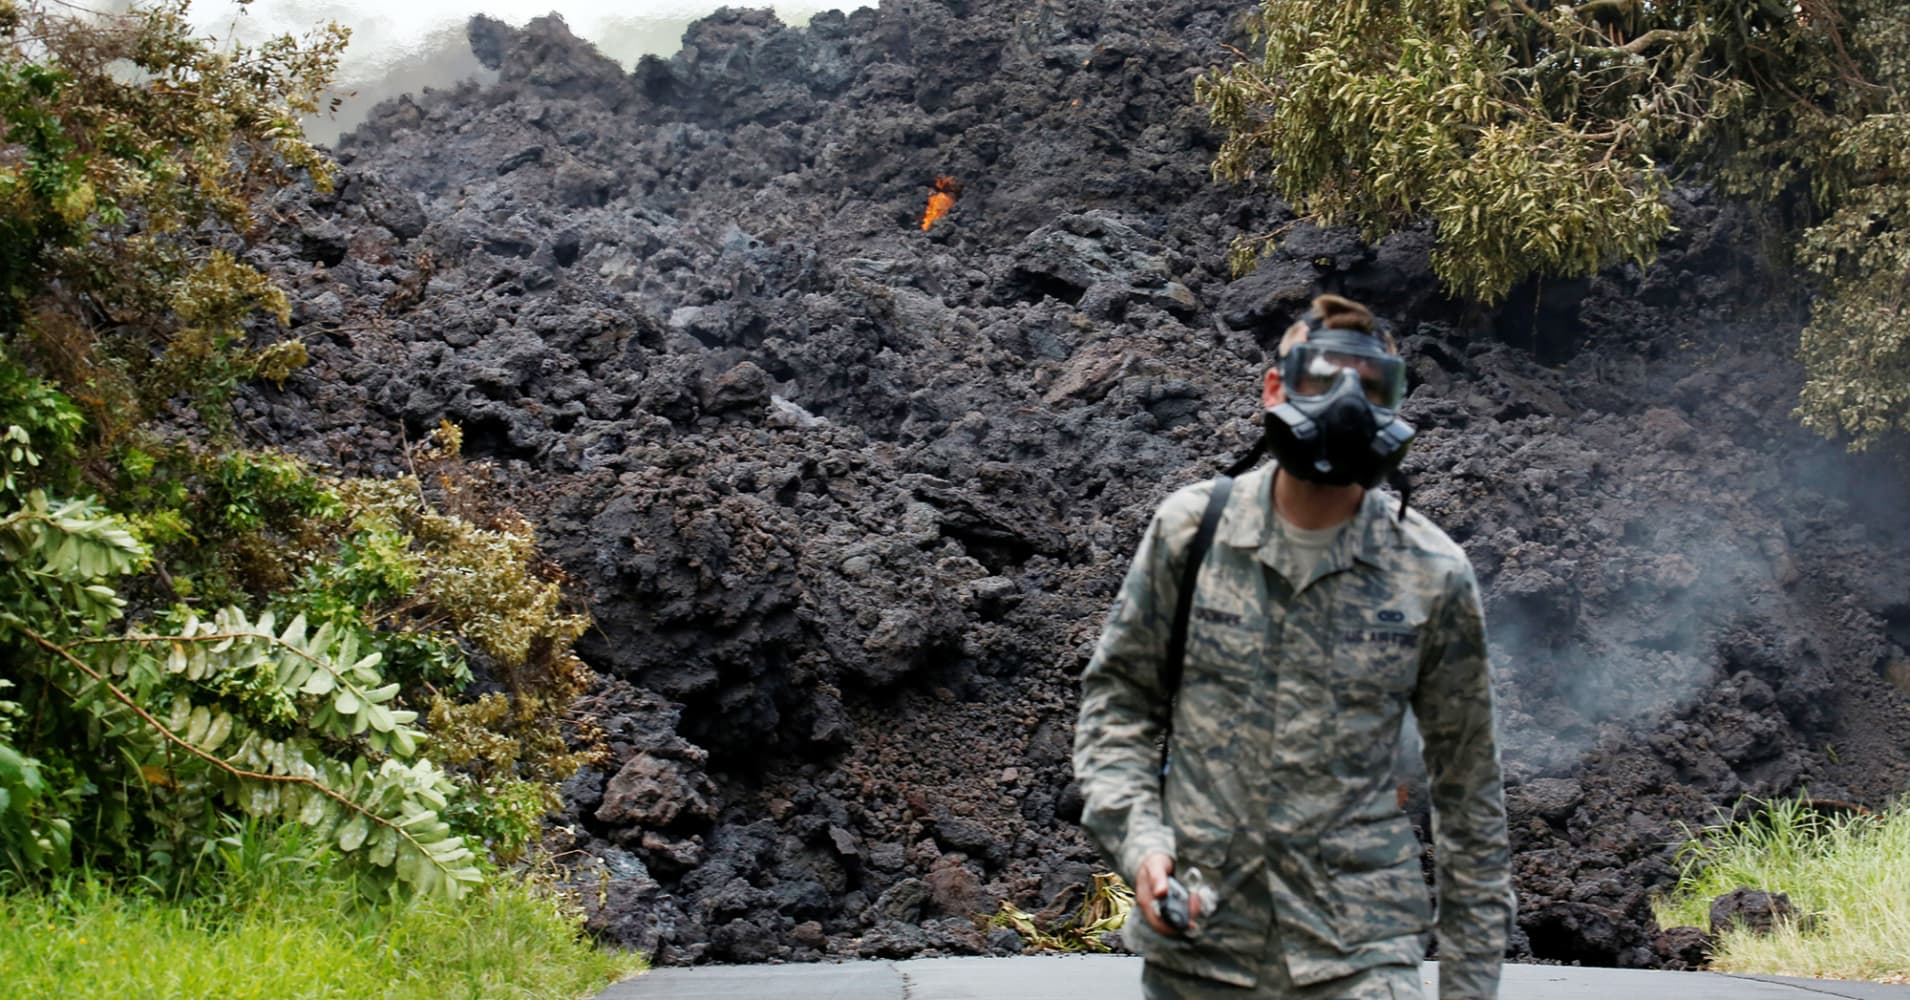 Senior Airman John Linzmeier, of the Hawaii National Guard, walks away from a lava flow on Highway 137 southeast of Pahoa during ongoing eruptions of the Kilauea Volcano in Hawaii, U.S., May 20, 2018.